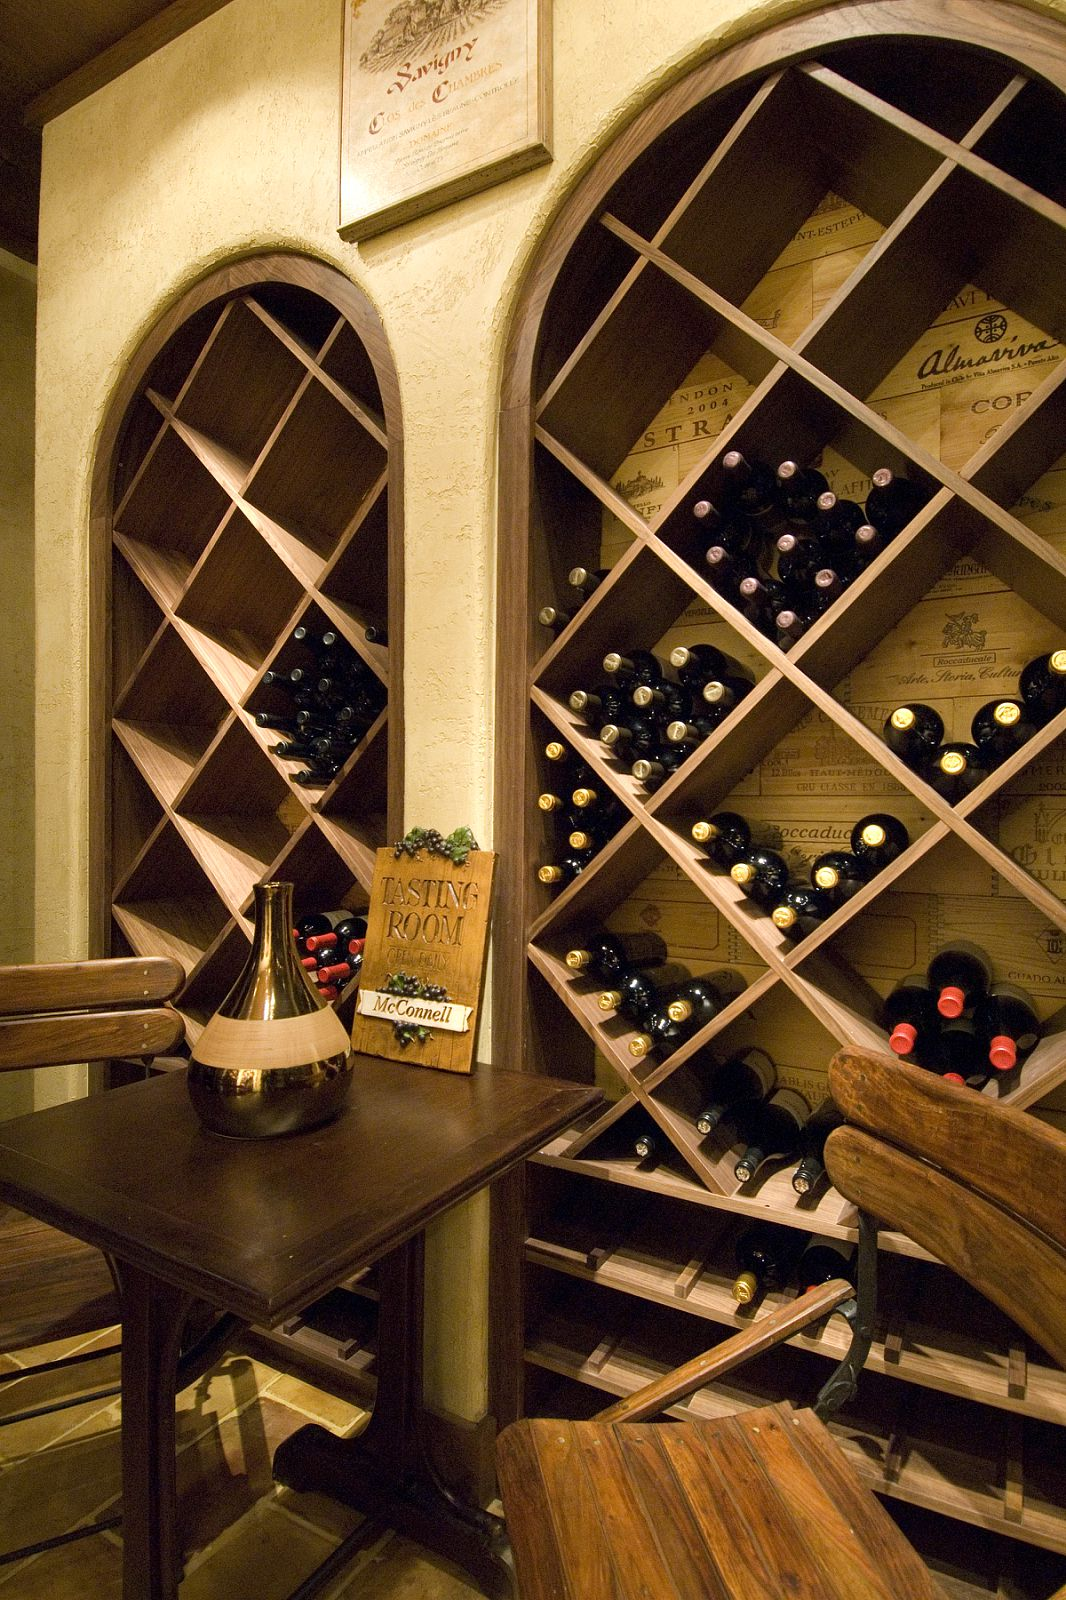 Interior Designer Adapts 18th Century French Wine Shop Design to 15000sq ft Luxury Home